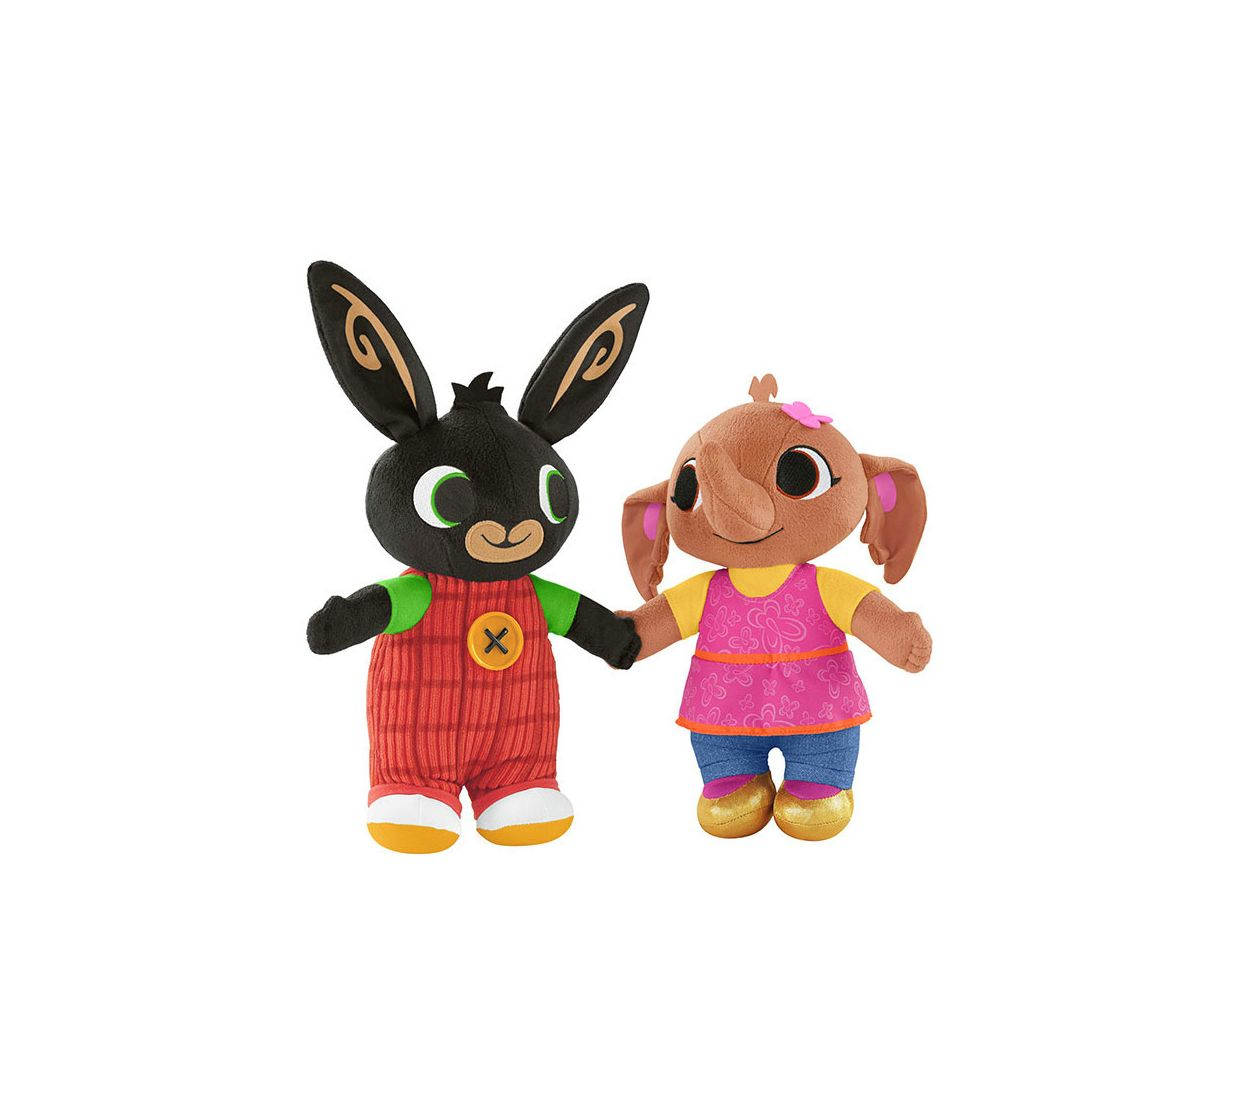 Best Friends Bing & Sula | Toy Review